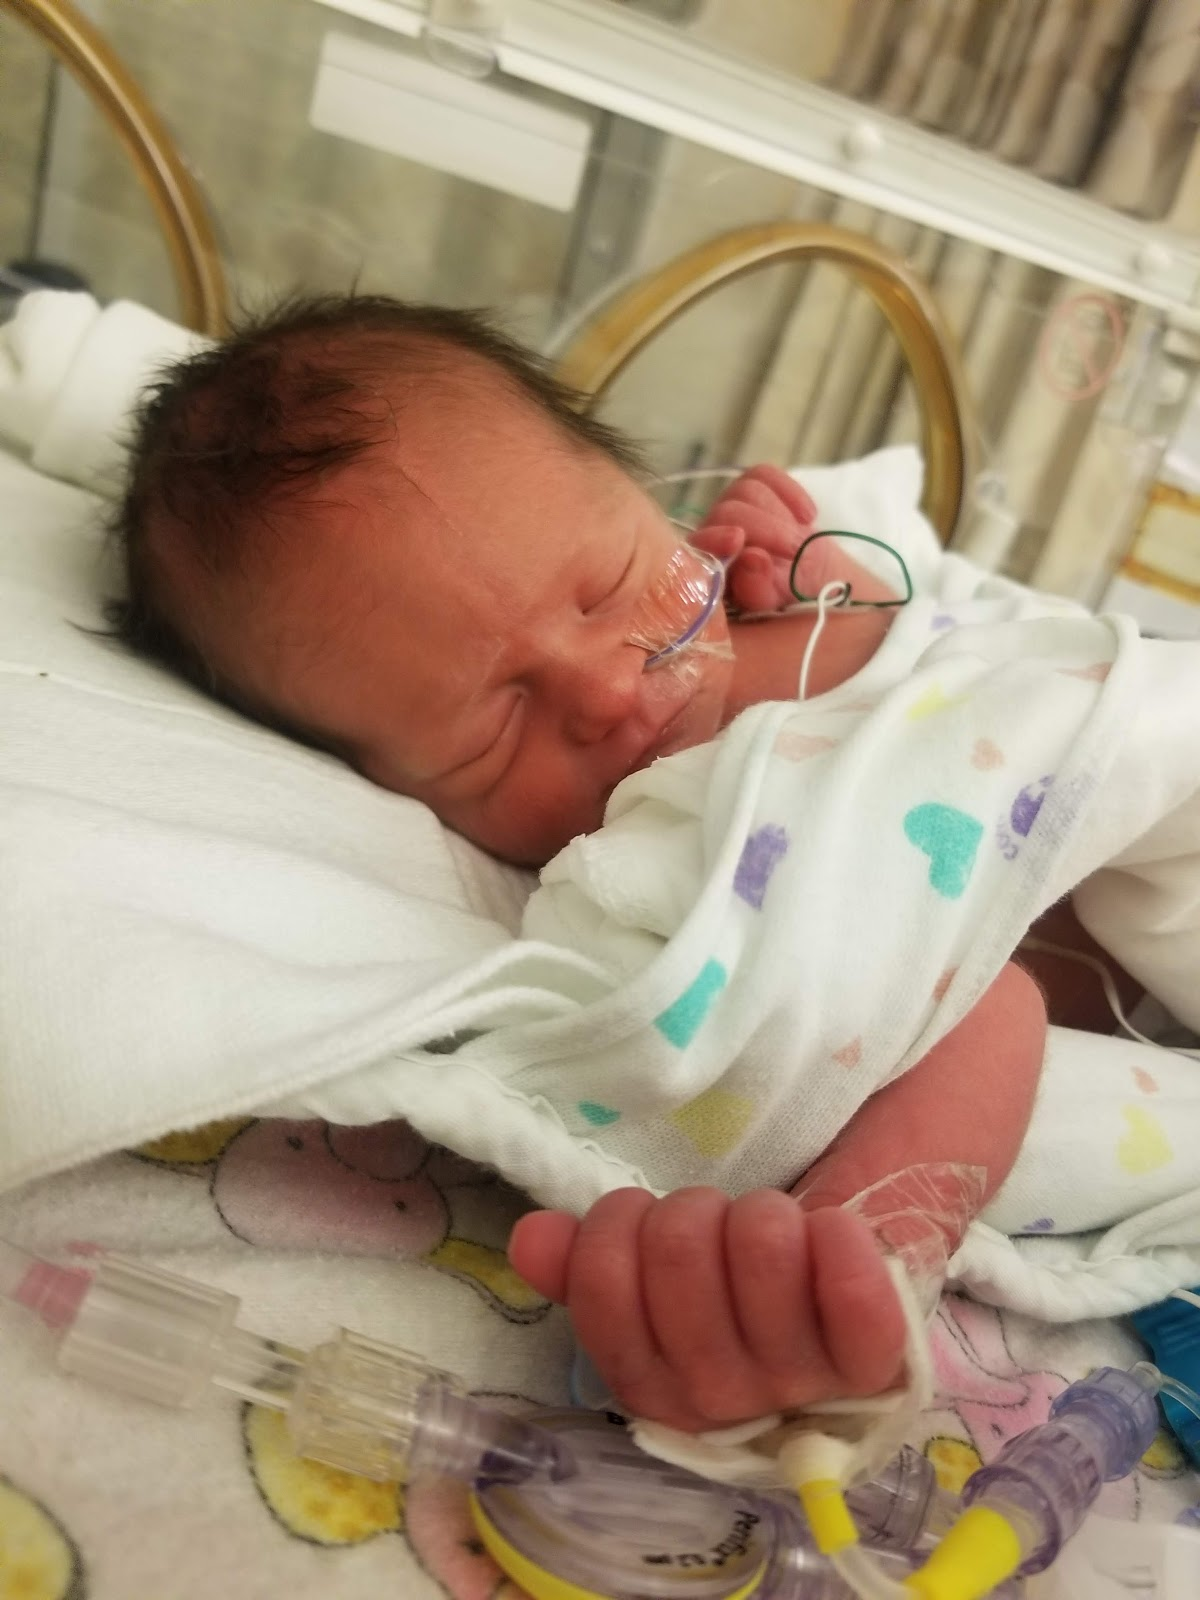 Maile Waite's baby Madison in the NICU